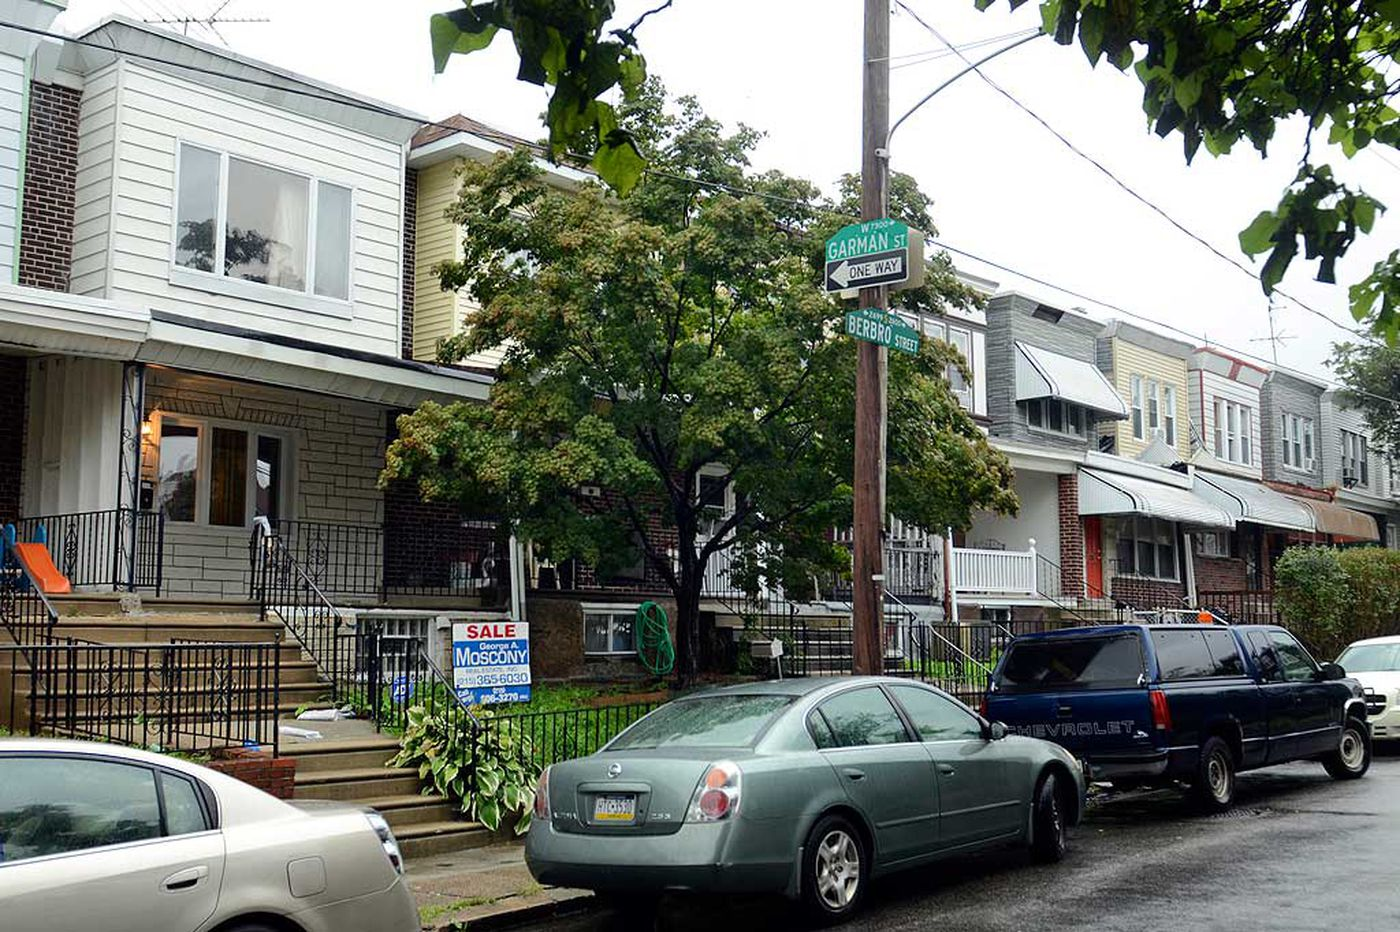 An analysis of Philly deeds reflects the challenges facing low- and moderate-income home buyers